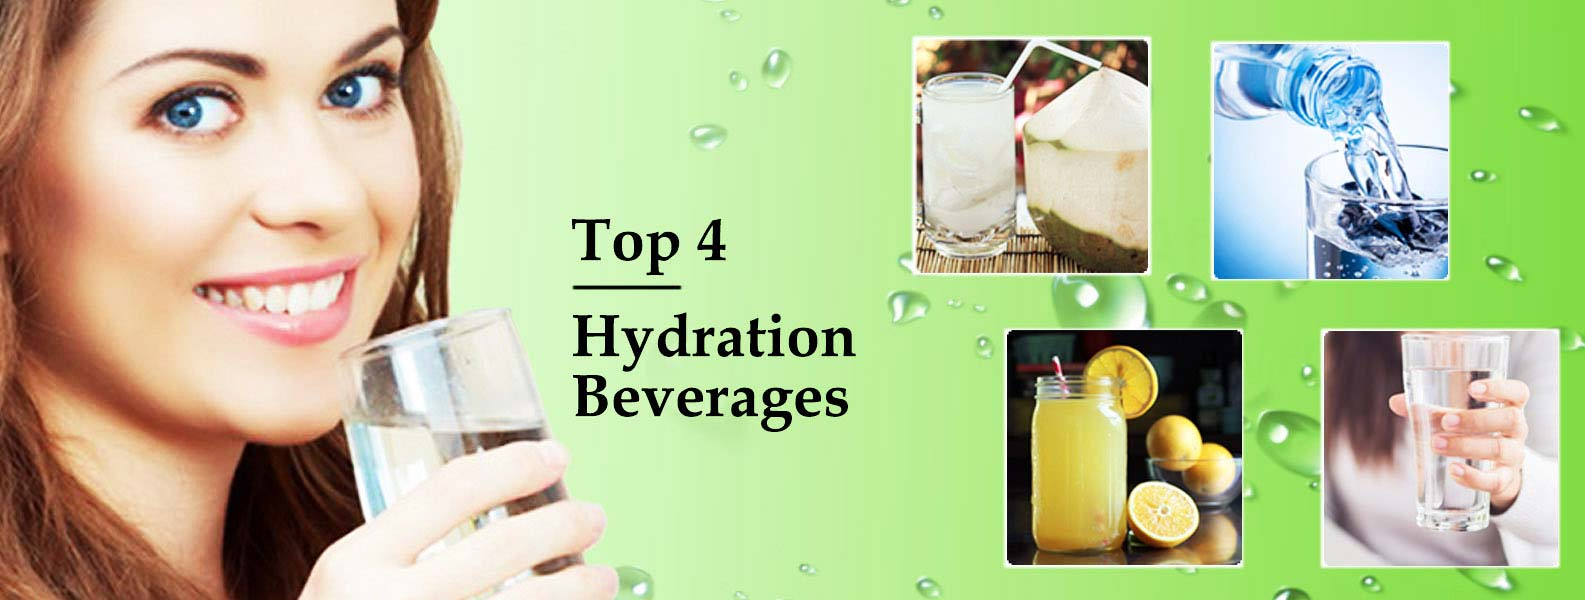 Hydration is the core of Health. Top 4 Hydration Beverages